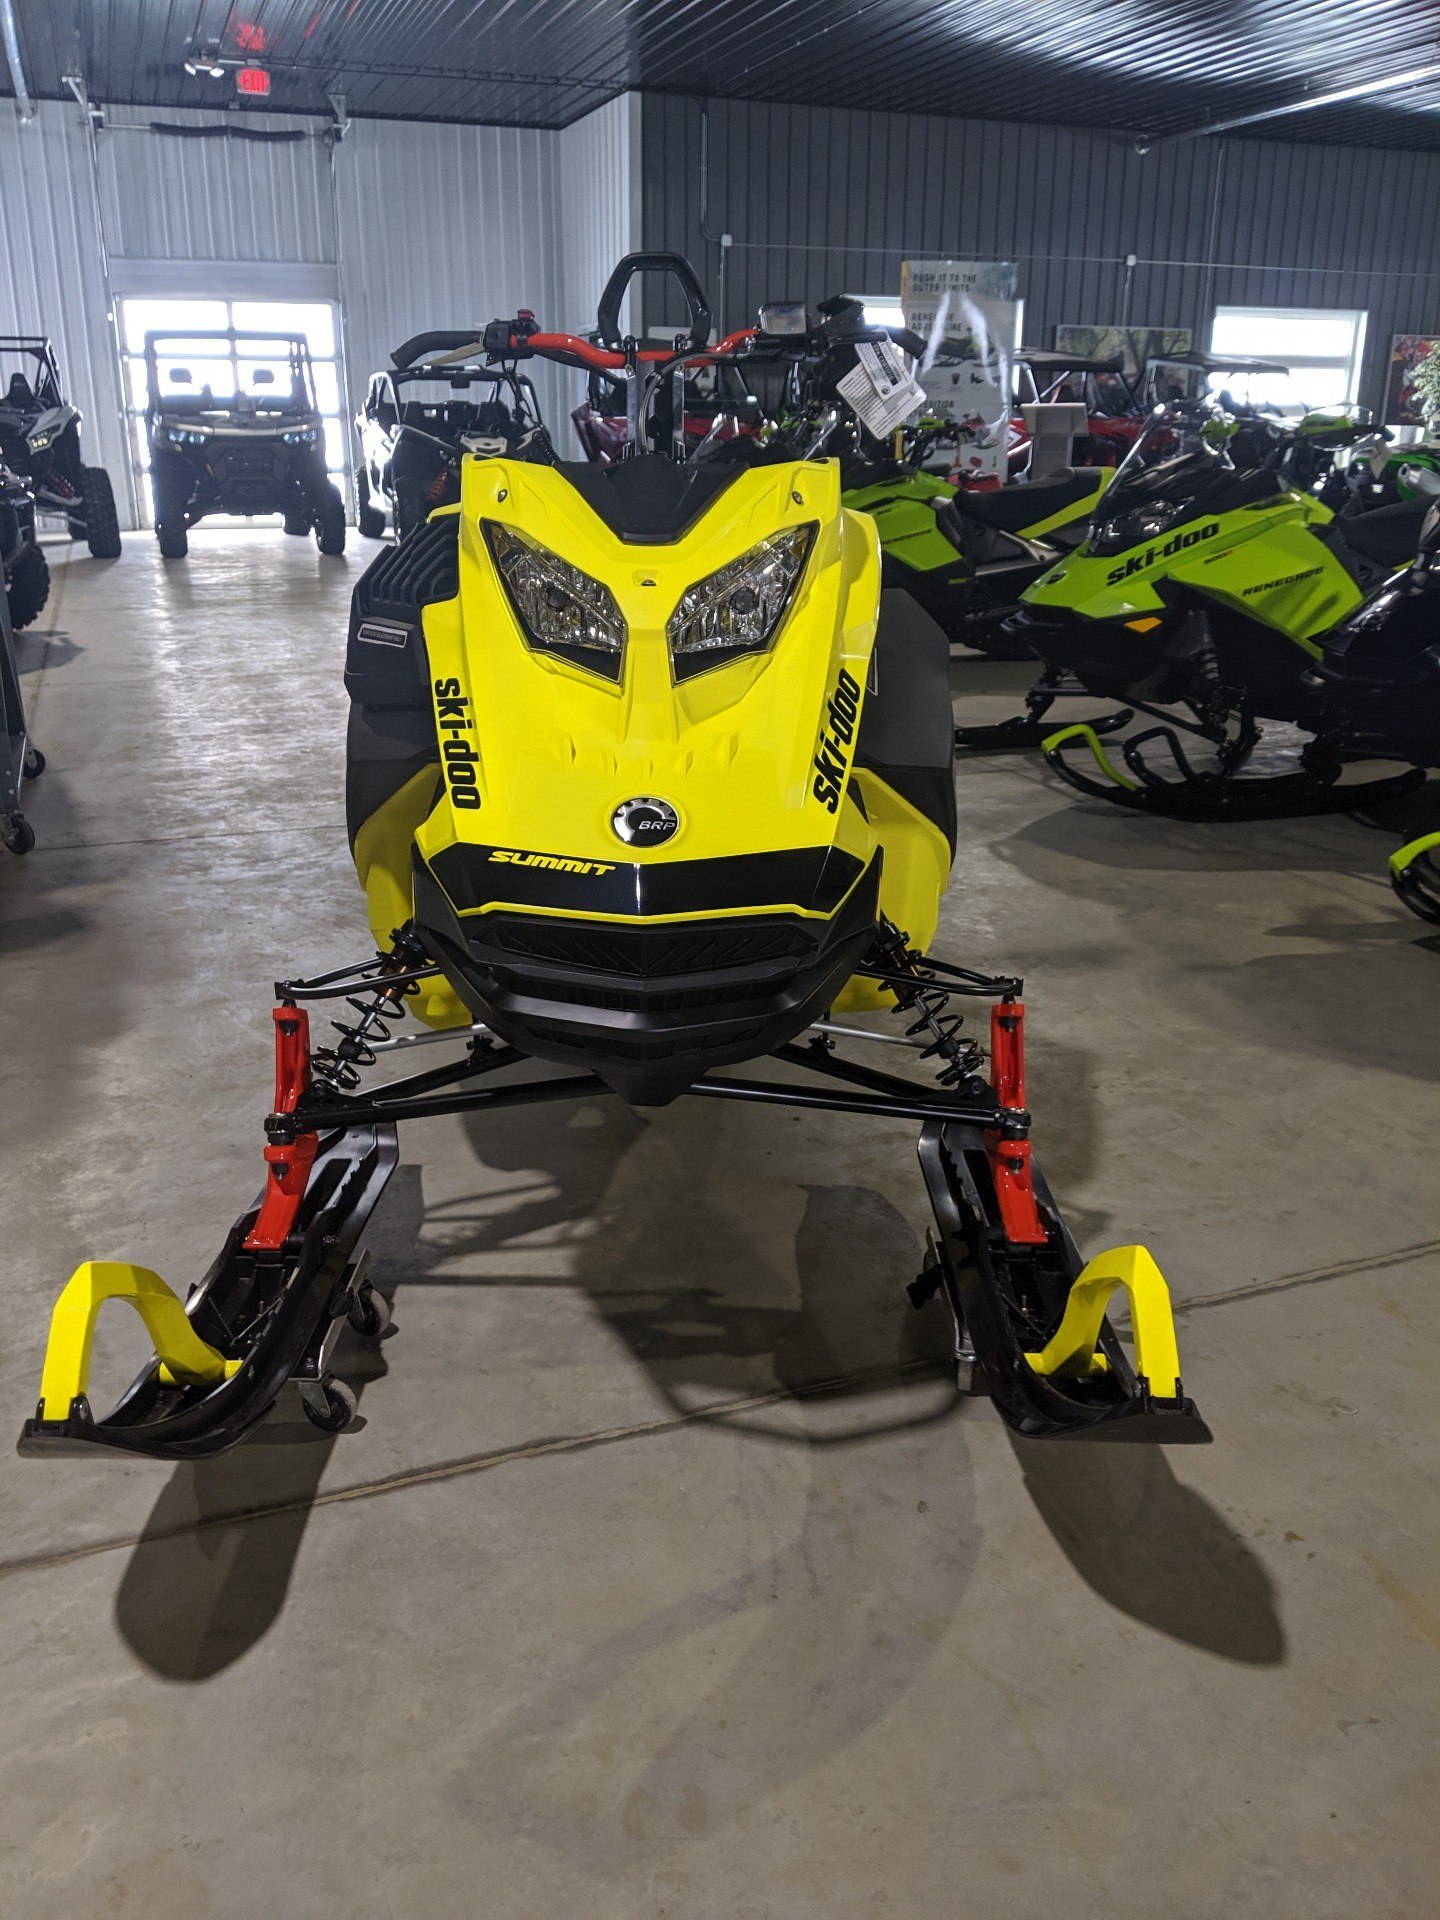 2020 Ski-Doo Summit 165 850 E-TEC Turbo SHOT in Cedar Falls, Iowa - Photo 2